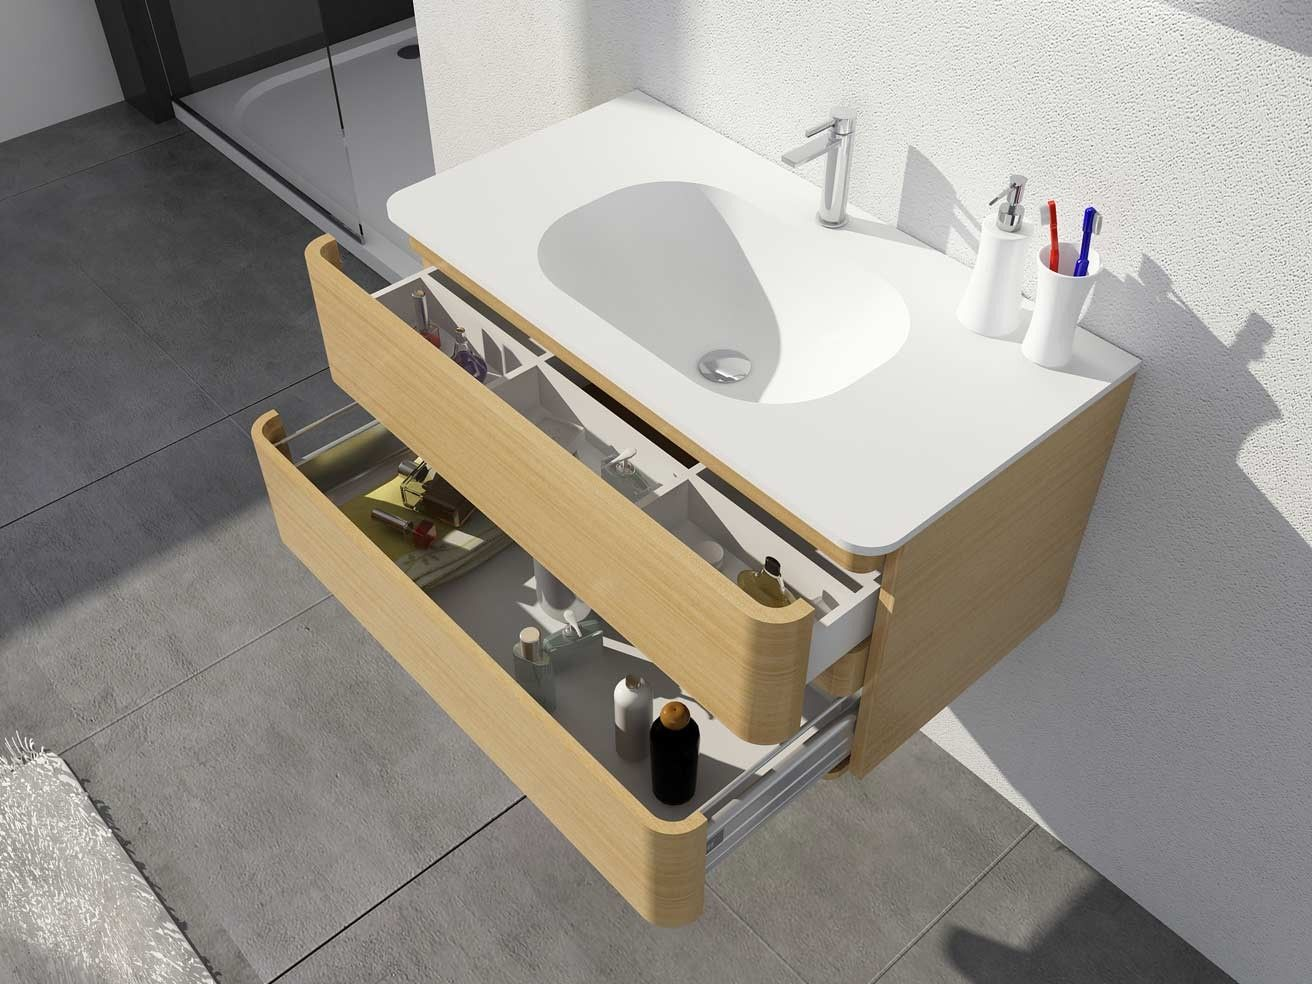 Get In Touch With #Professionals to Know How to Utilize Space Wisely With #Bathroom #Renovation Ideas.